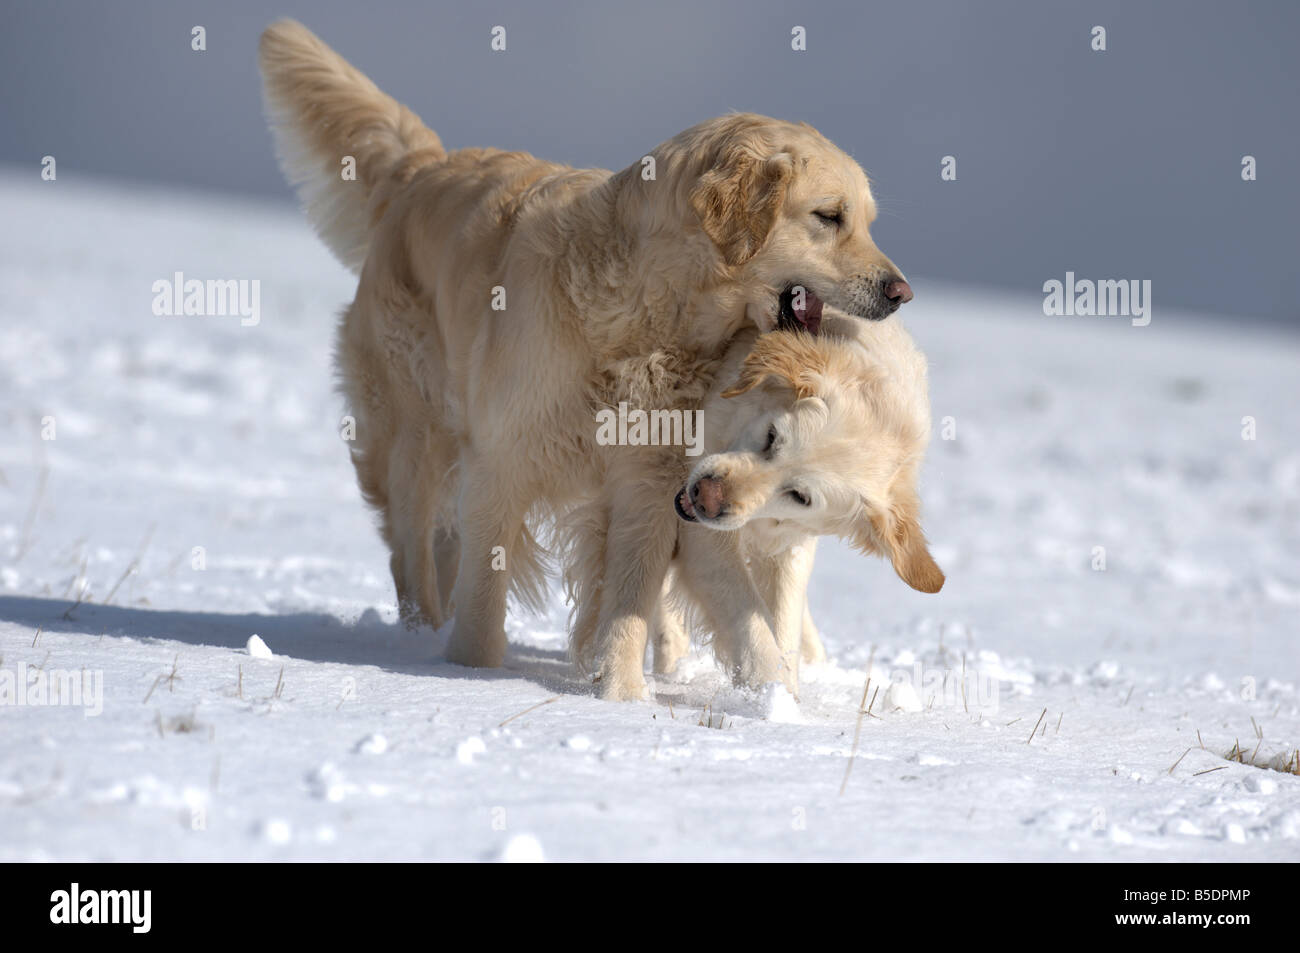 Golden Retriever (Canis lupus familiaris). Pair playing on snow - Stock Image